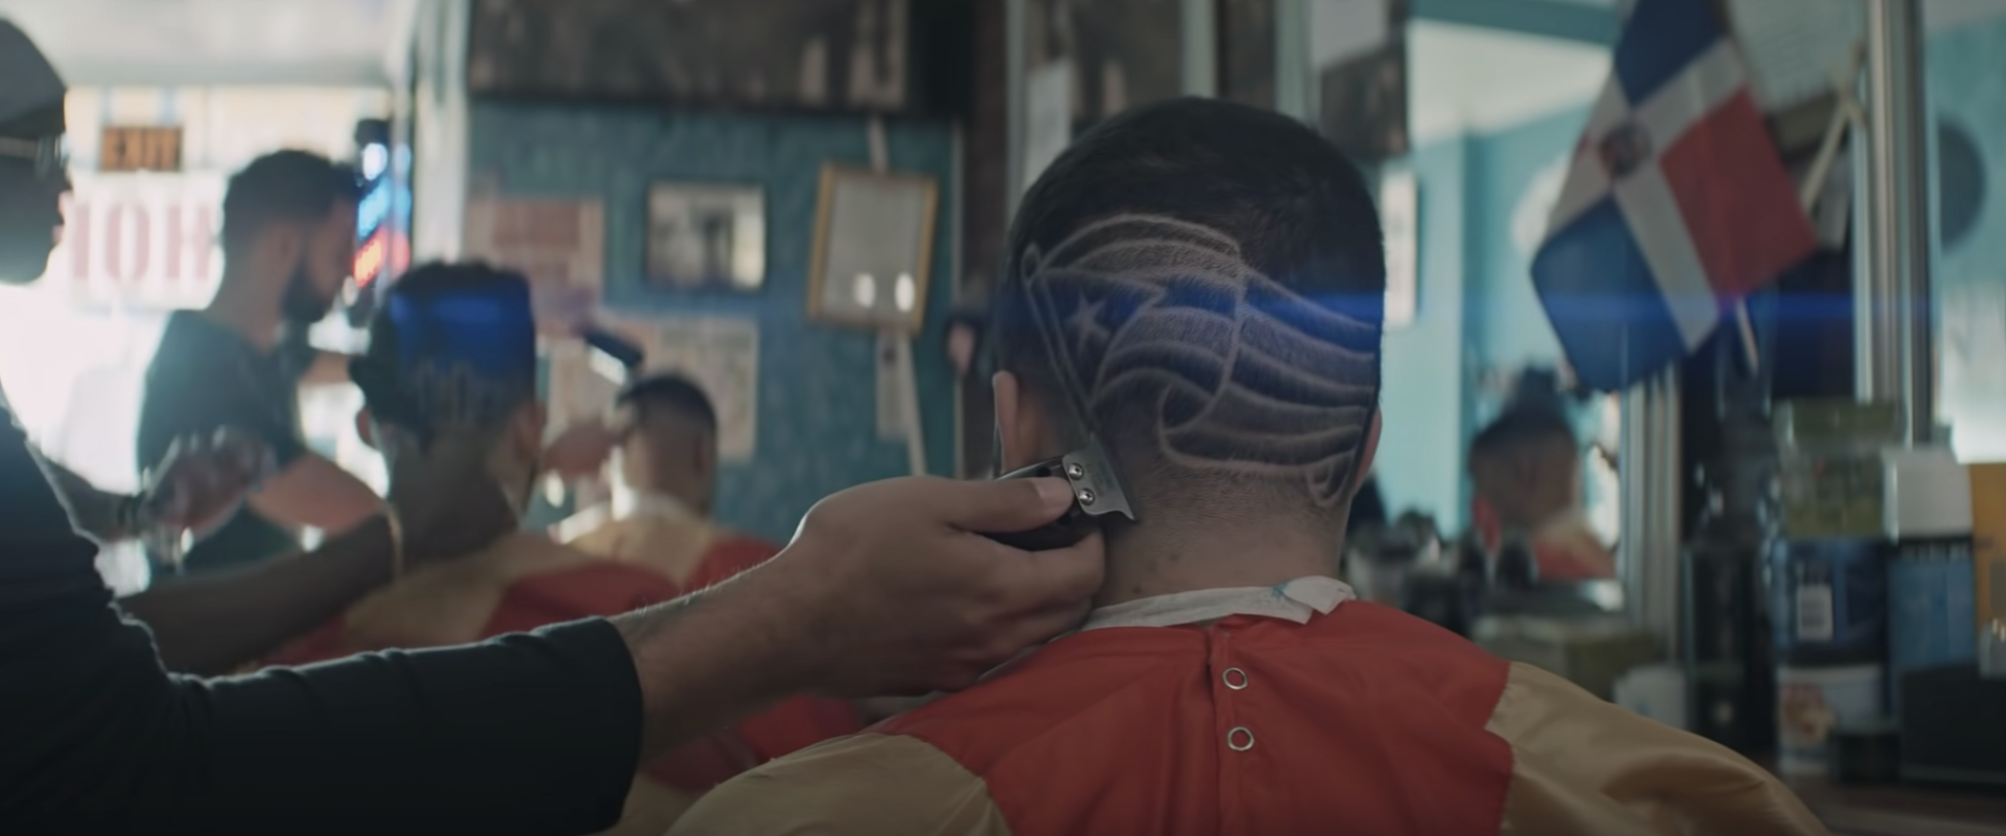 A Puerto Rican flag shaved onto the head of a man in In The Heights